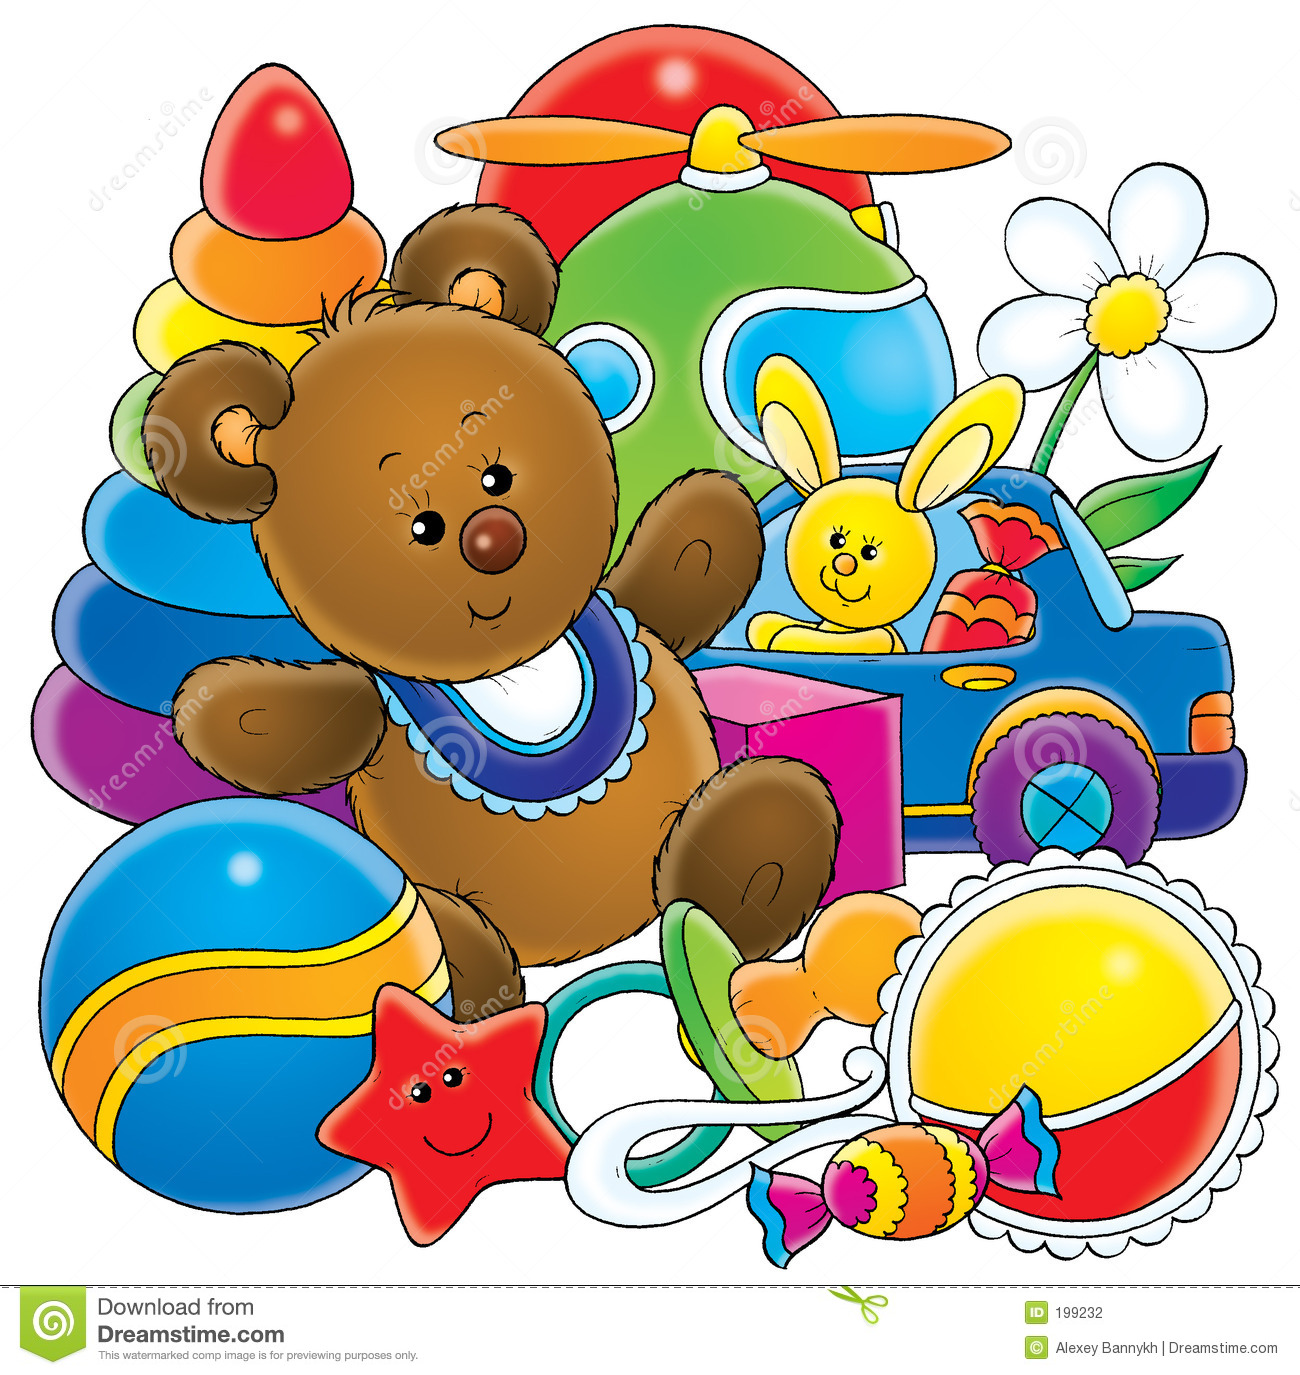 Toy Illustration For Children A Series B-Toy Illustration For Children A Series Baby-12